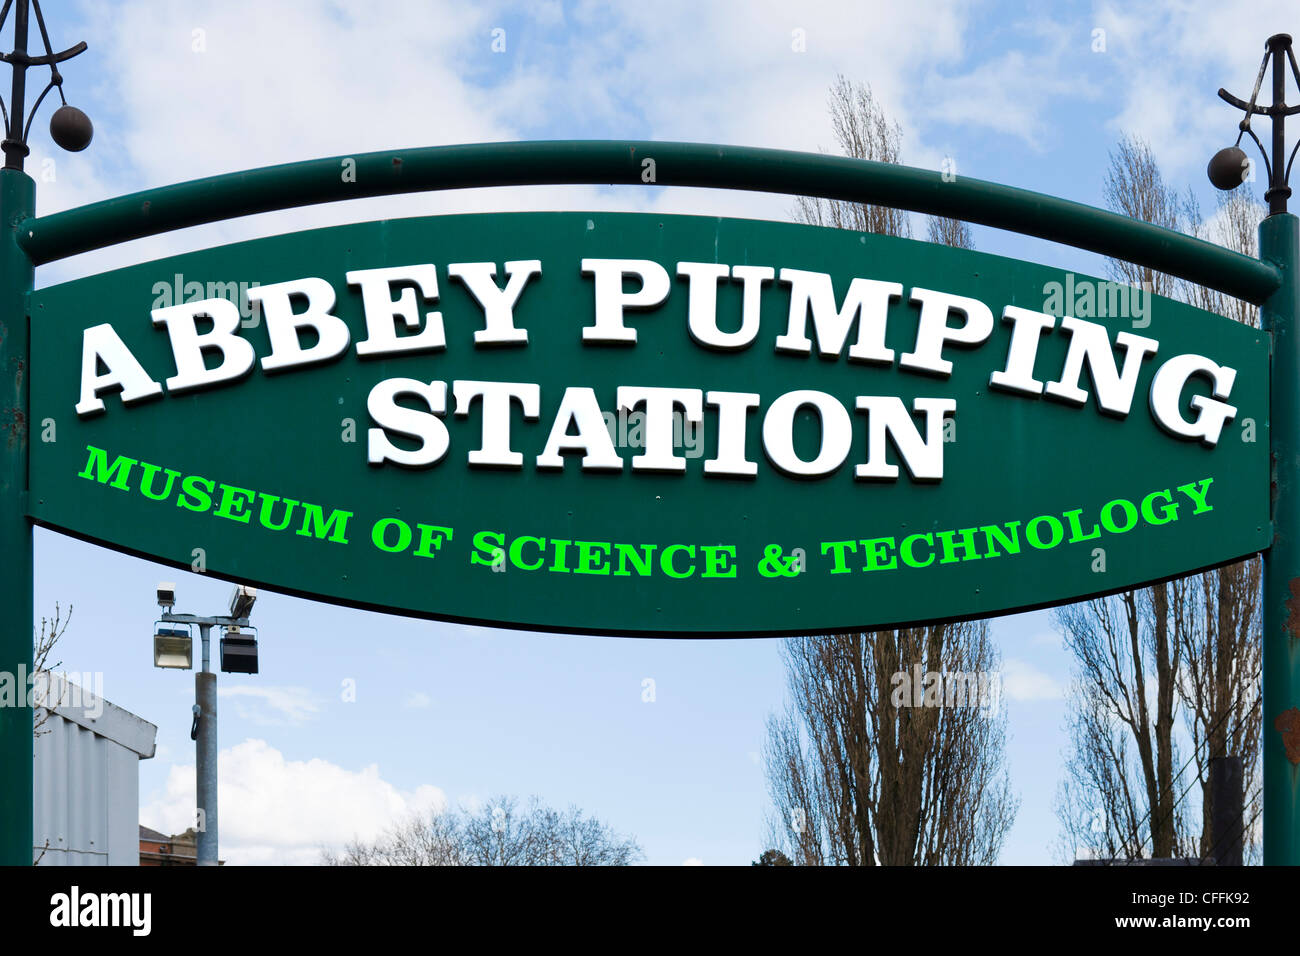 Entrance to the Abbey Pumping Station museum, Leicester, Leicestershire, England, UK - Stock Image